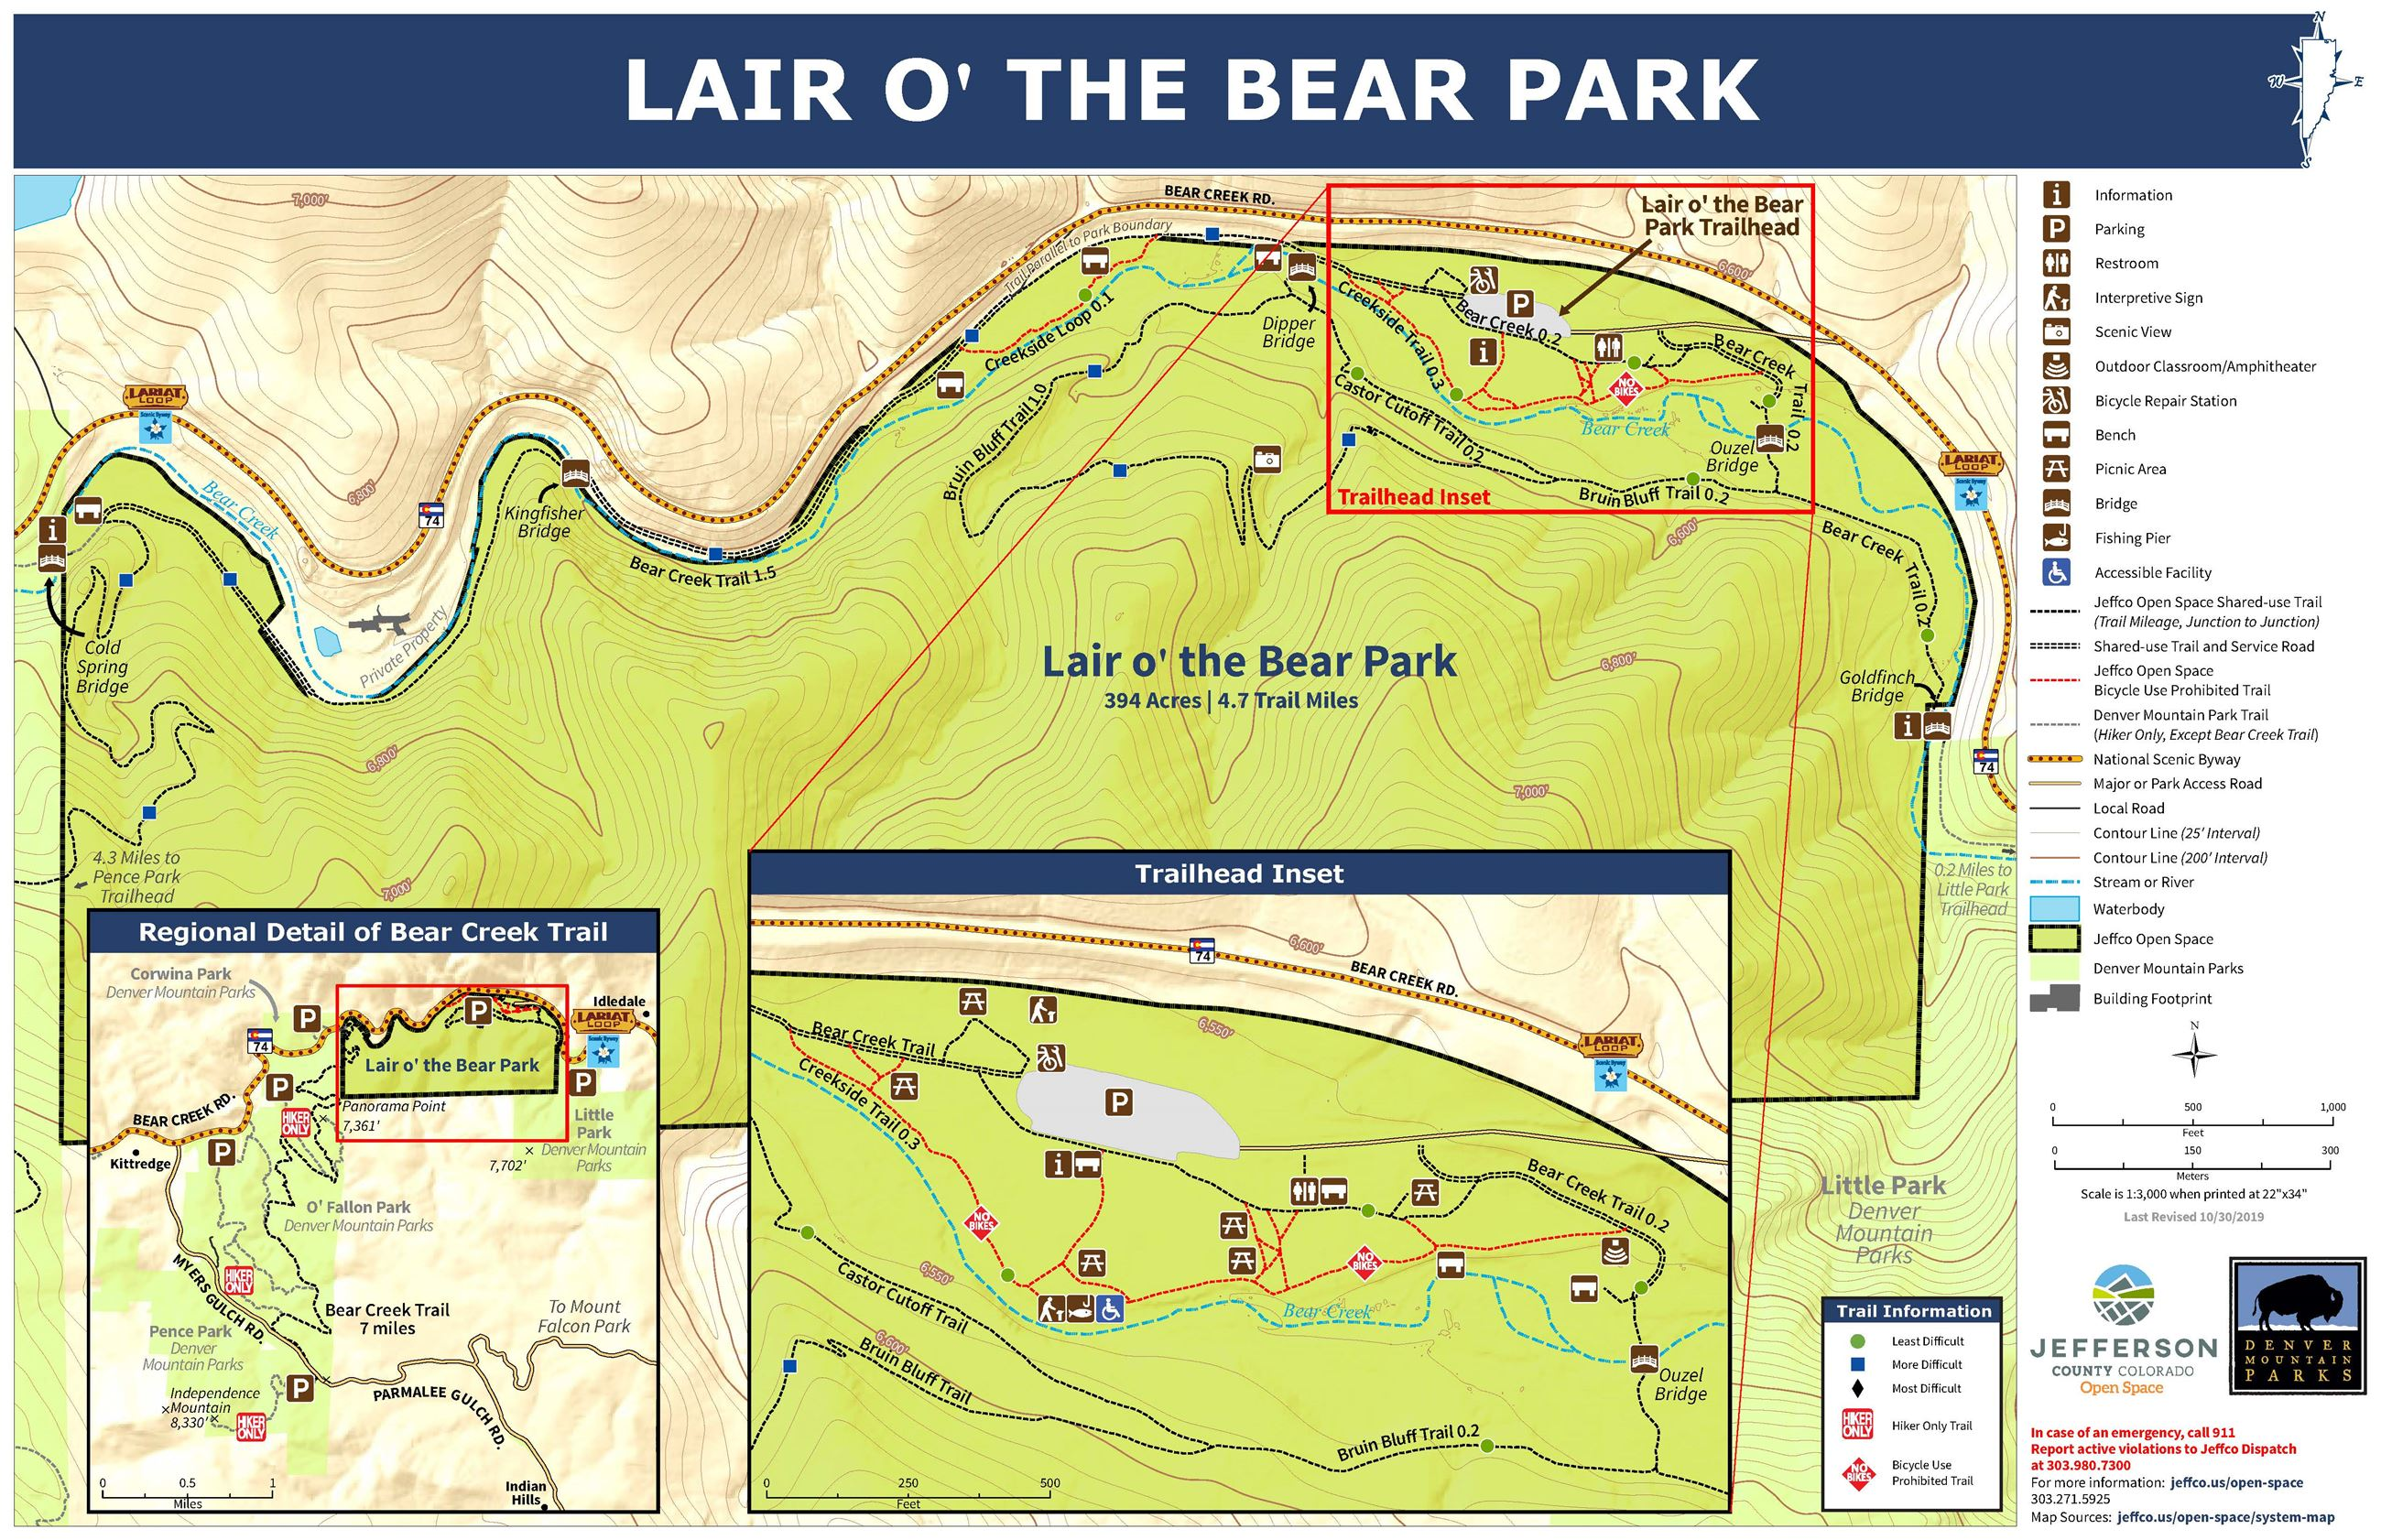 Lair o' the Bear Park Map